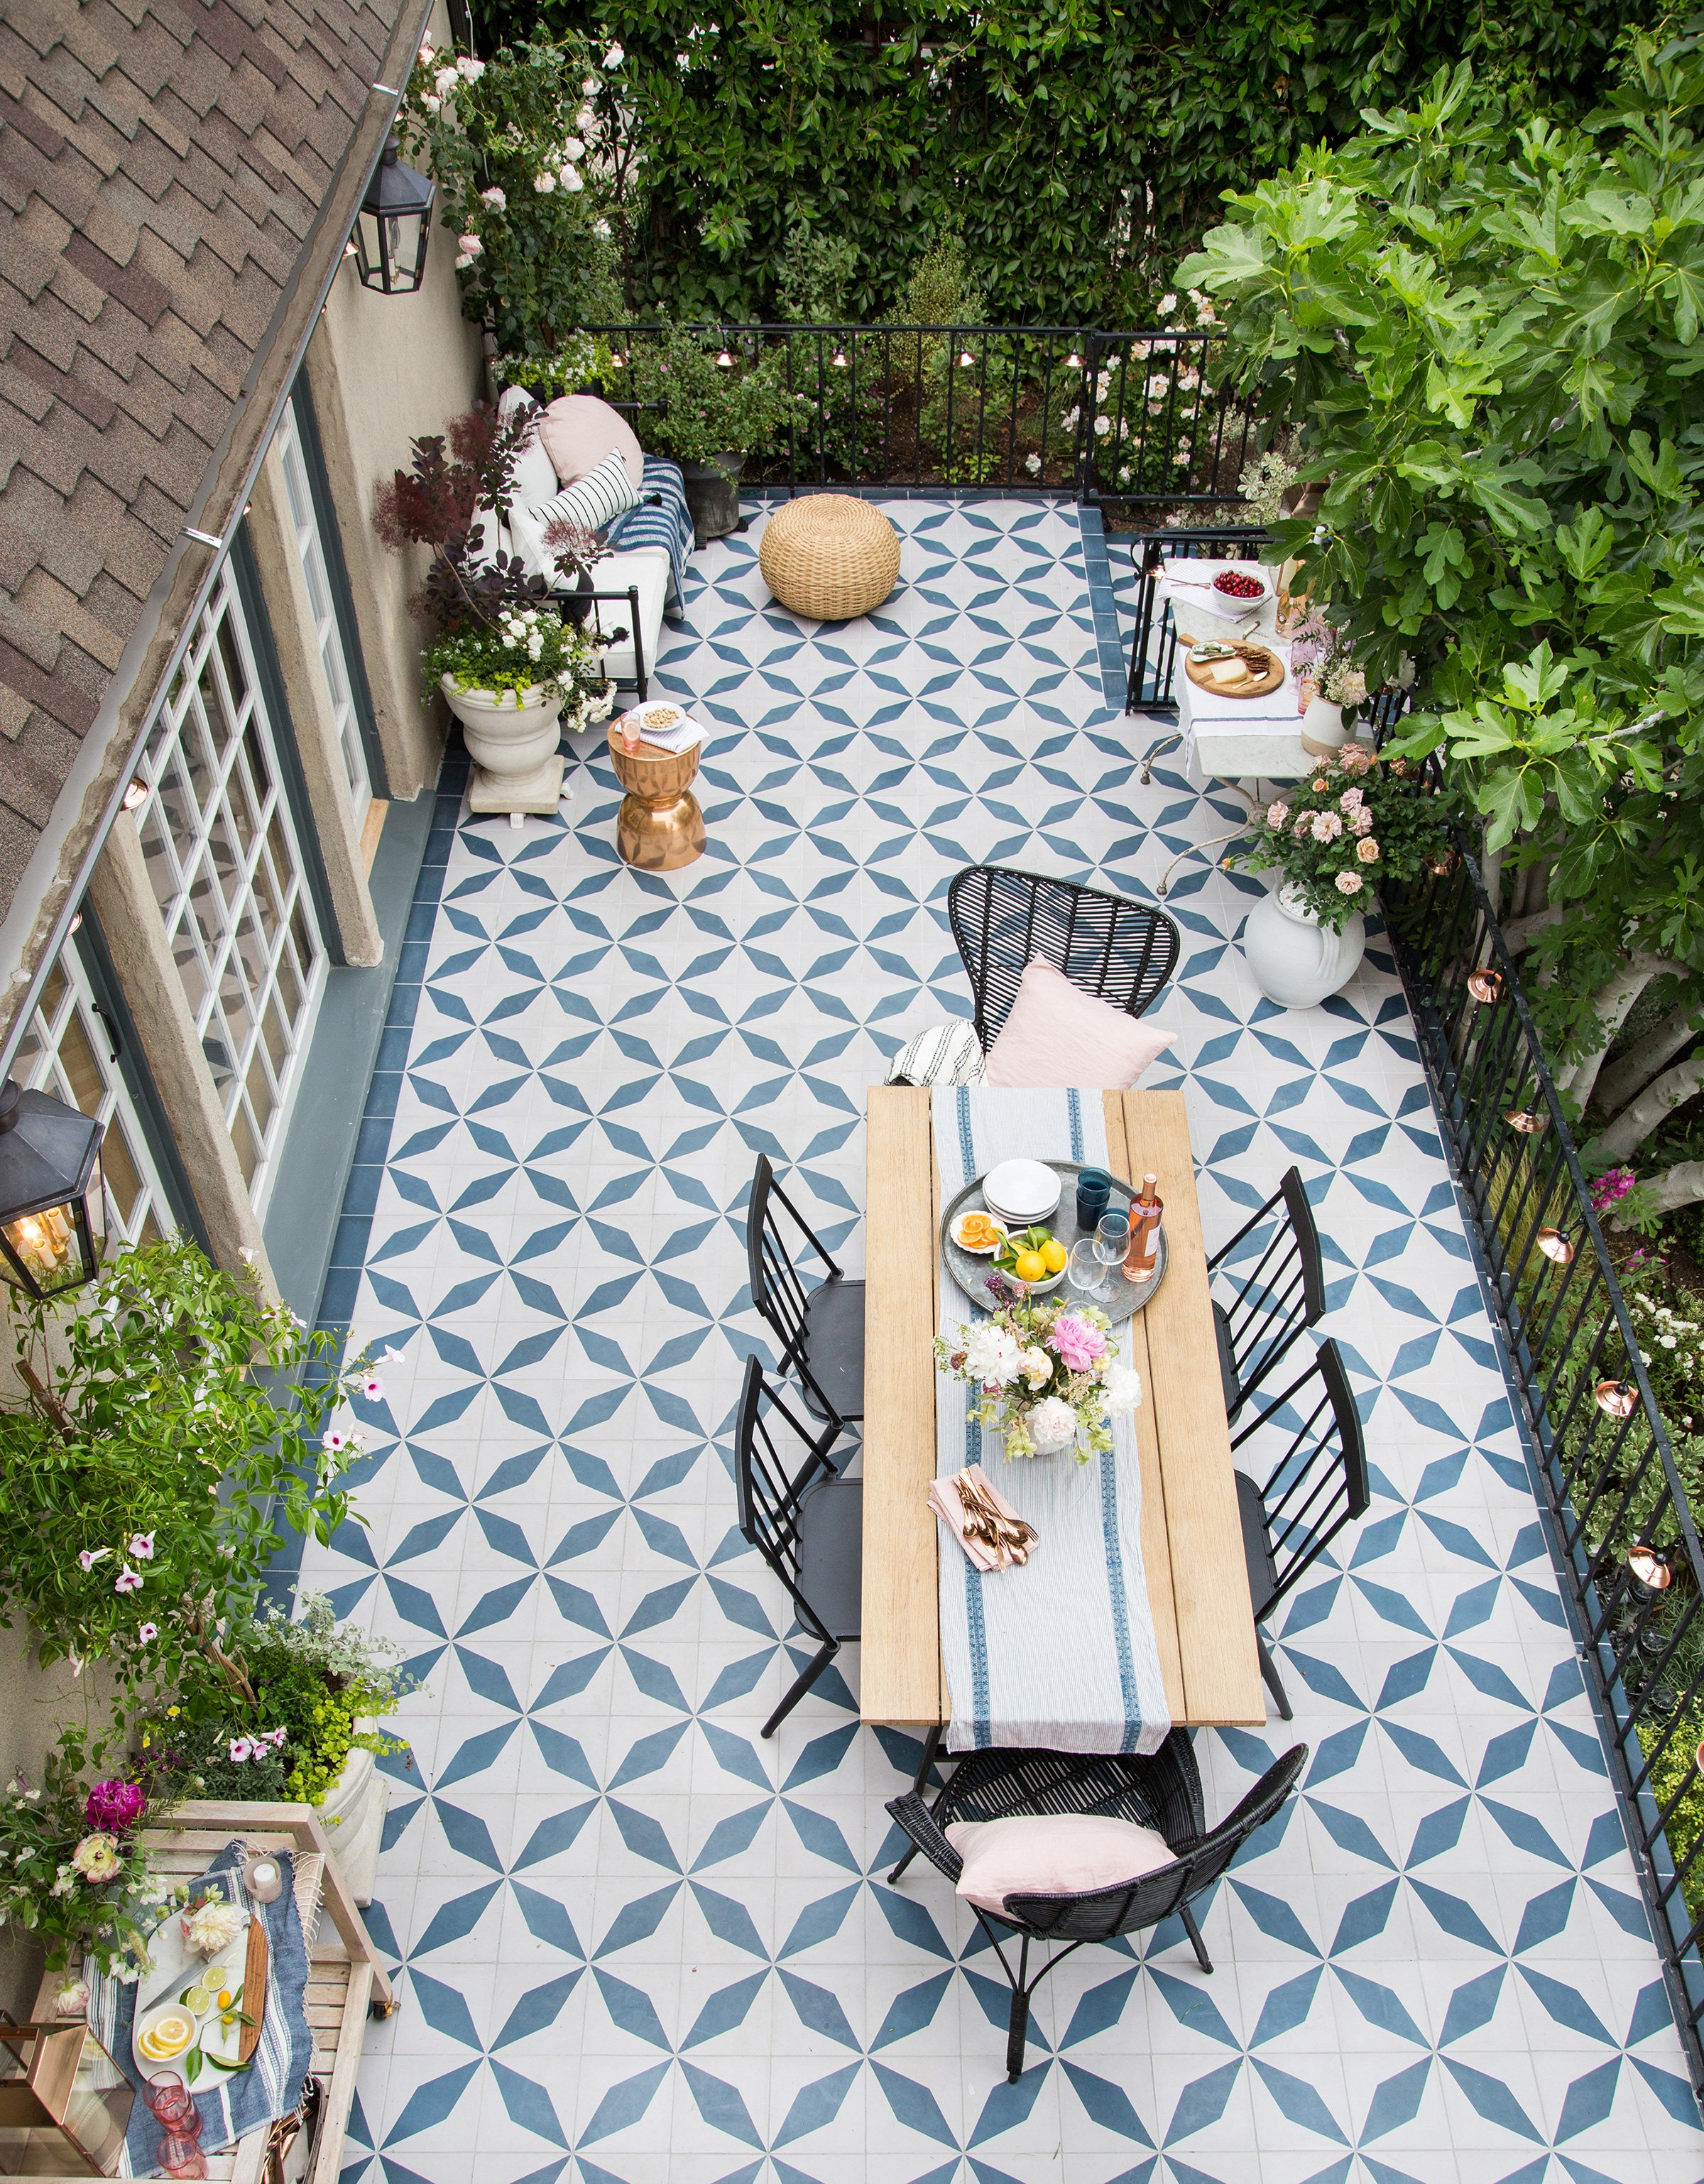 Outdoor Tile with Style - San Diego Home/Garden Lifestyles